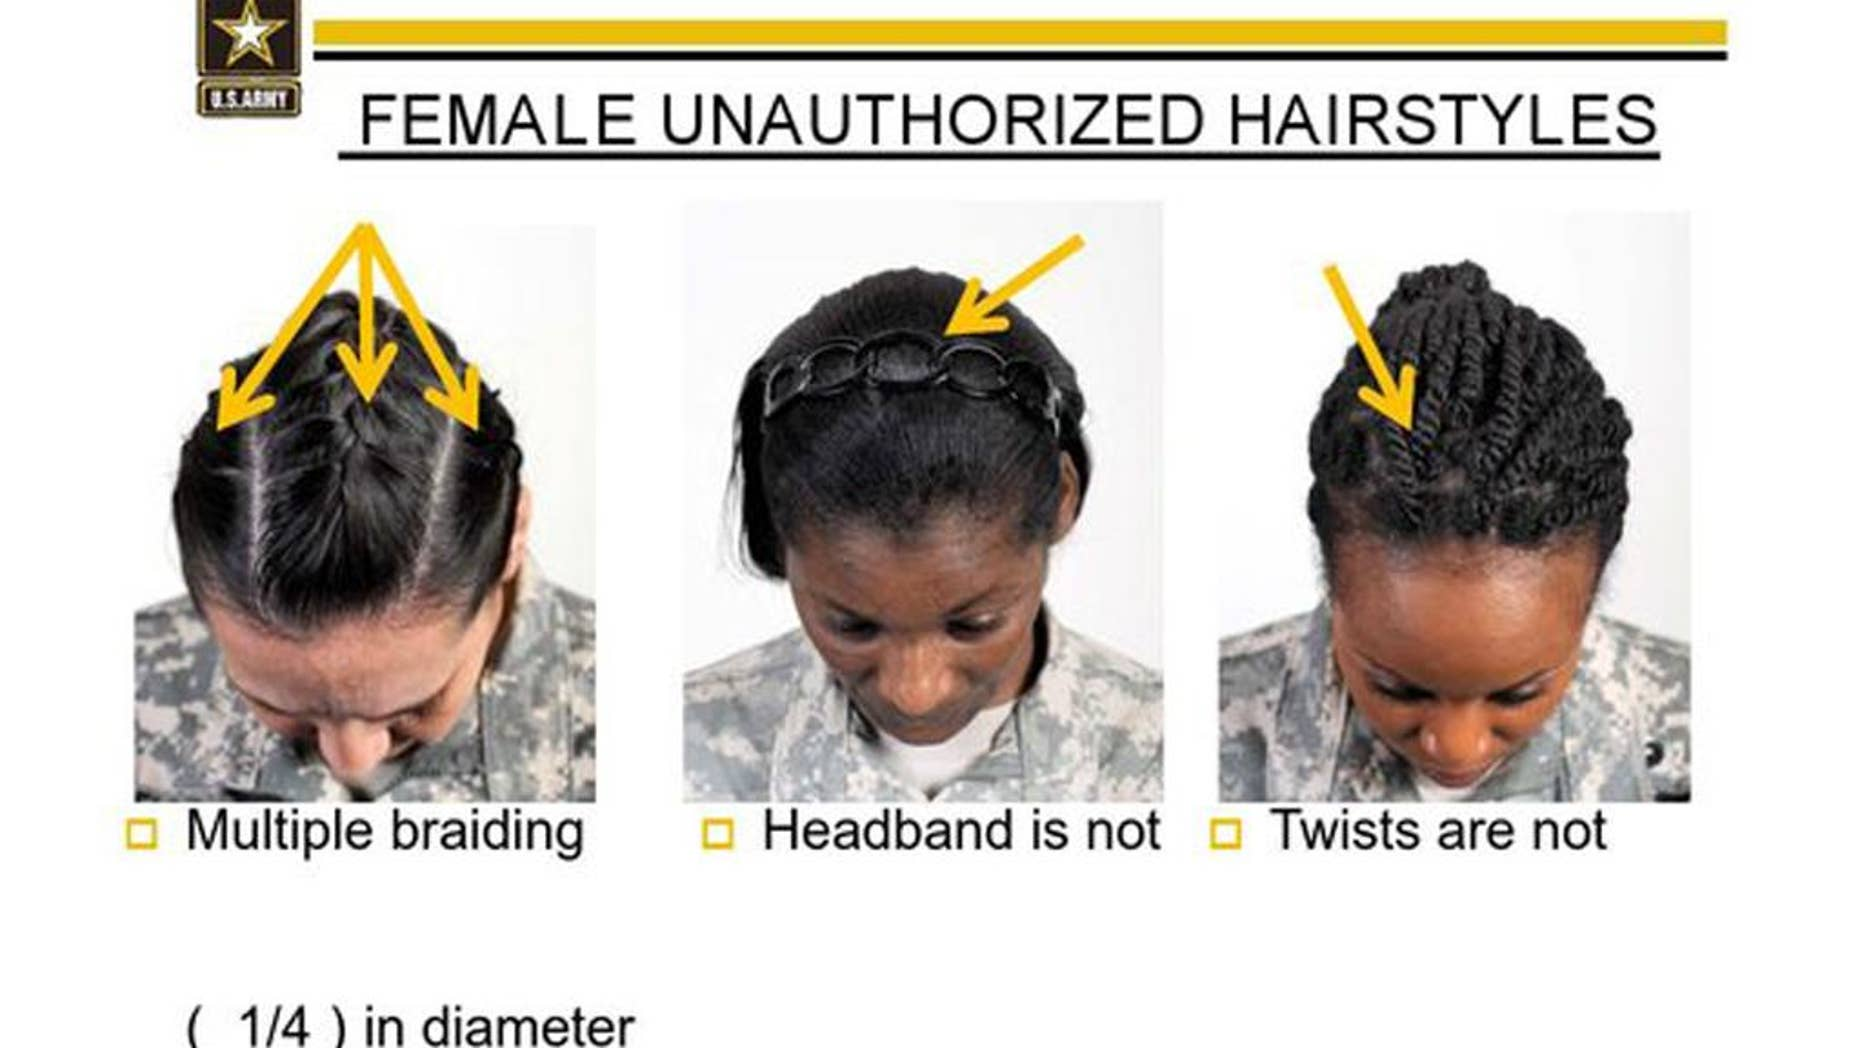 """This undated image provided by the US Army shows new Army grooming regulations for females. New Army regulations meant to help standardized and professionalize soldiers' appearance is now coming under criticism by some black military women, who say changes in the requirement for their hair are racially biased. The Army earlier this week issued new appearance standards, which included bans on most twists, dreadlocks and large cornrows, all styles used predominantly by African-American women with natural hairstyles. More than 11,000 people have signed a White House petition asking President Barack Obama, the commander-in-chief, to have the military review the regulations to allow for """"neat and maintained natural hairstyles."""" (AP Photo/US Army)"""